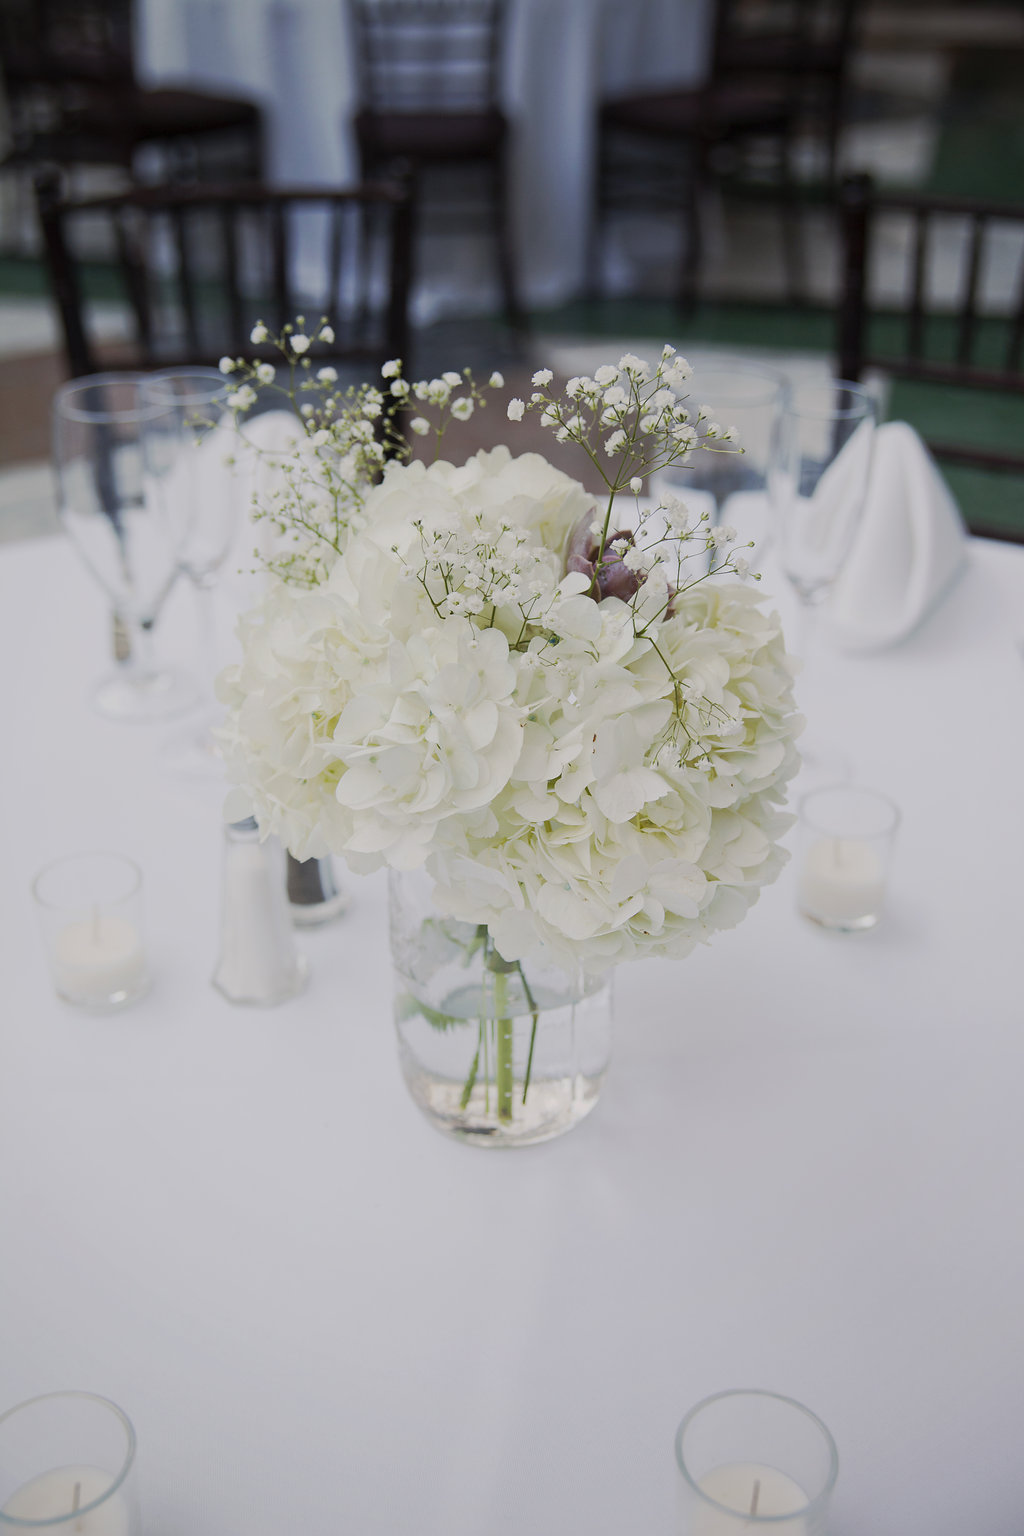 wedding centerpiece with hydrangeas